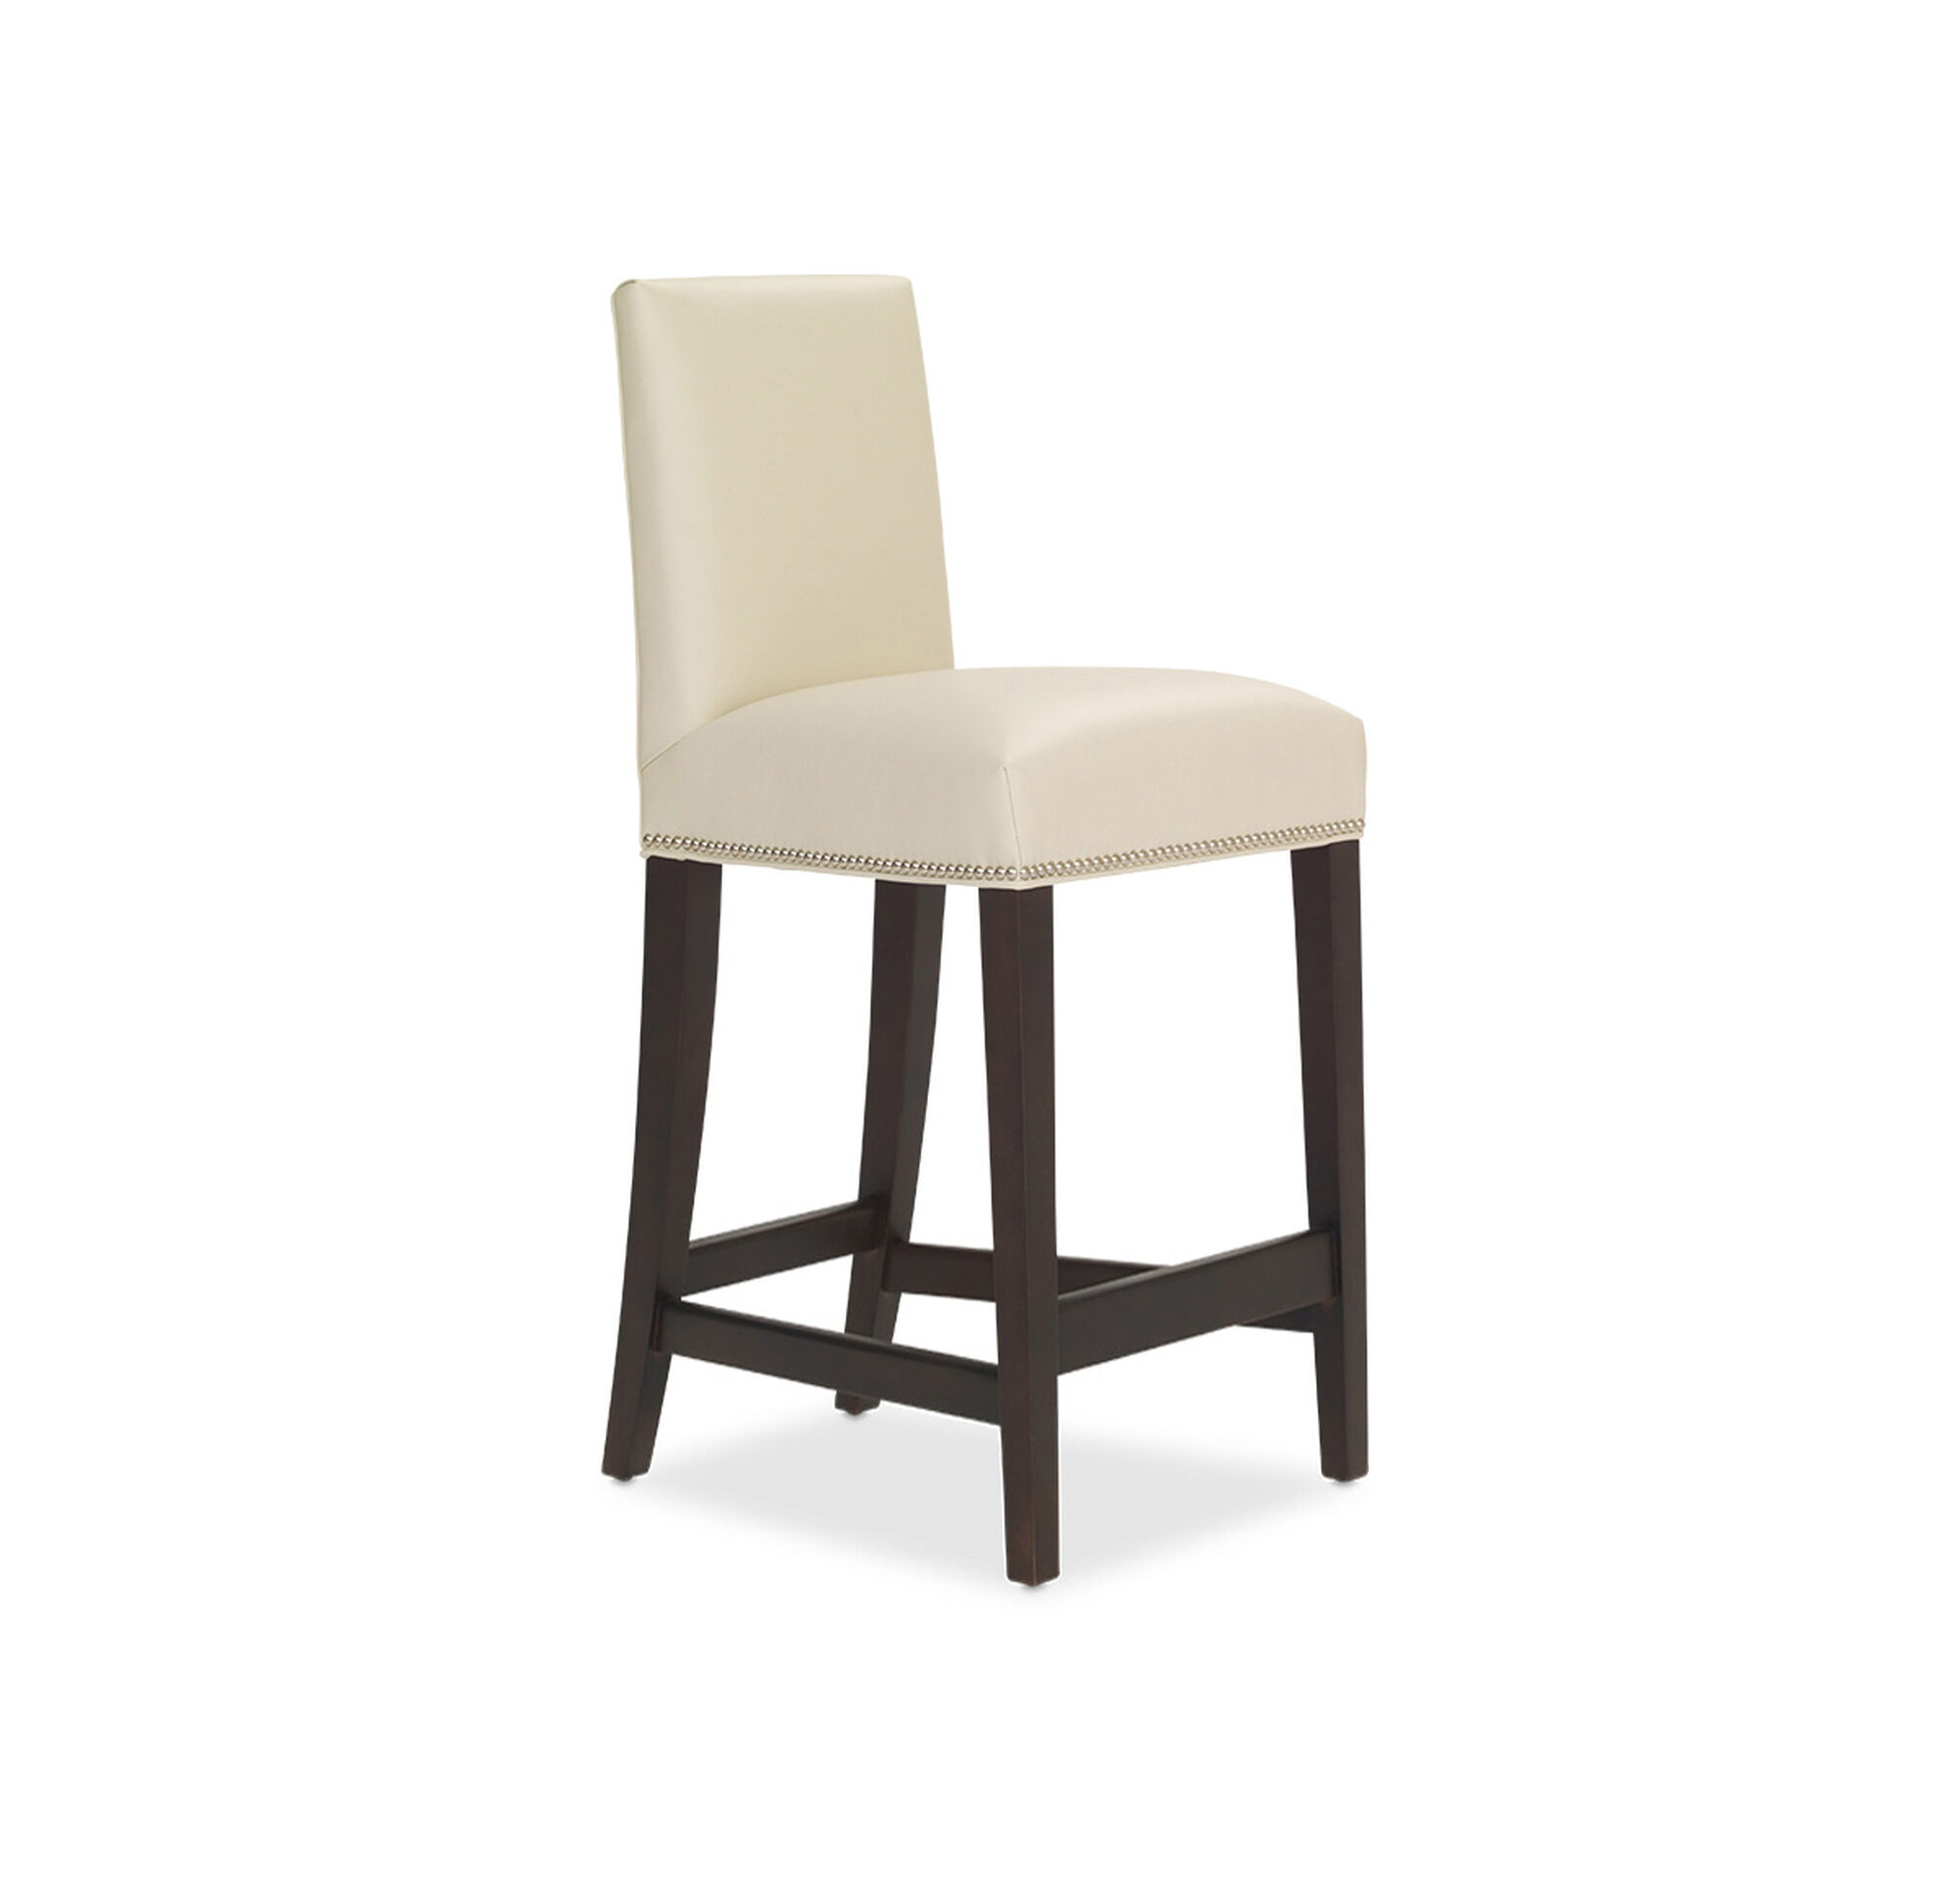 counter media elm bar west uk slope stools stool leather